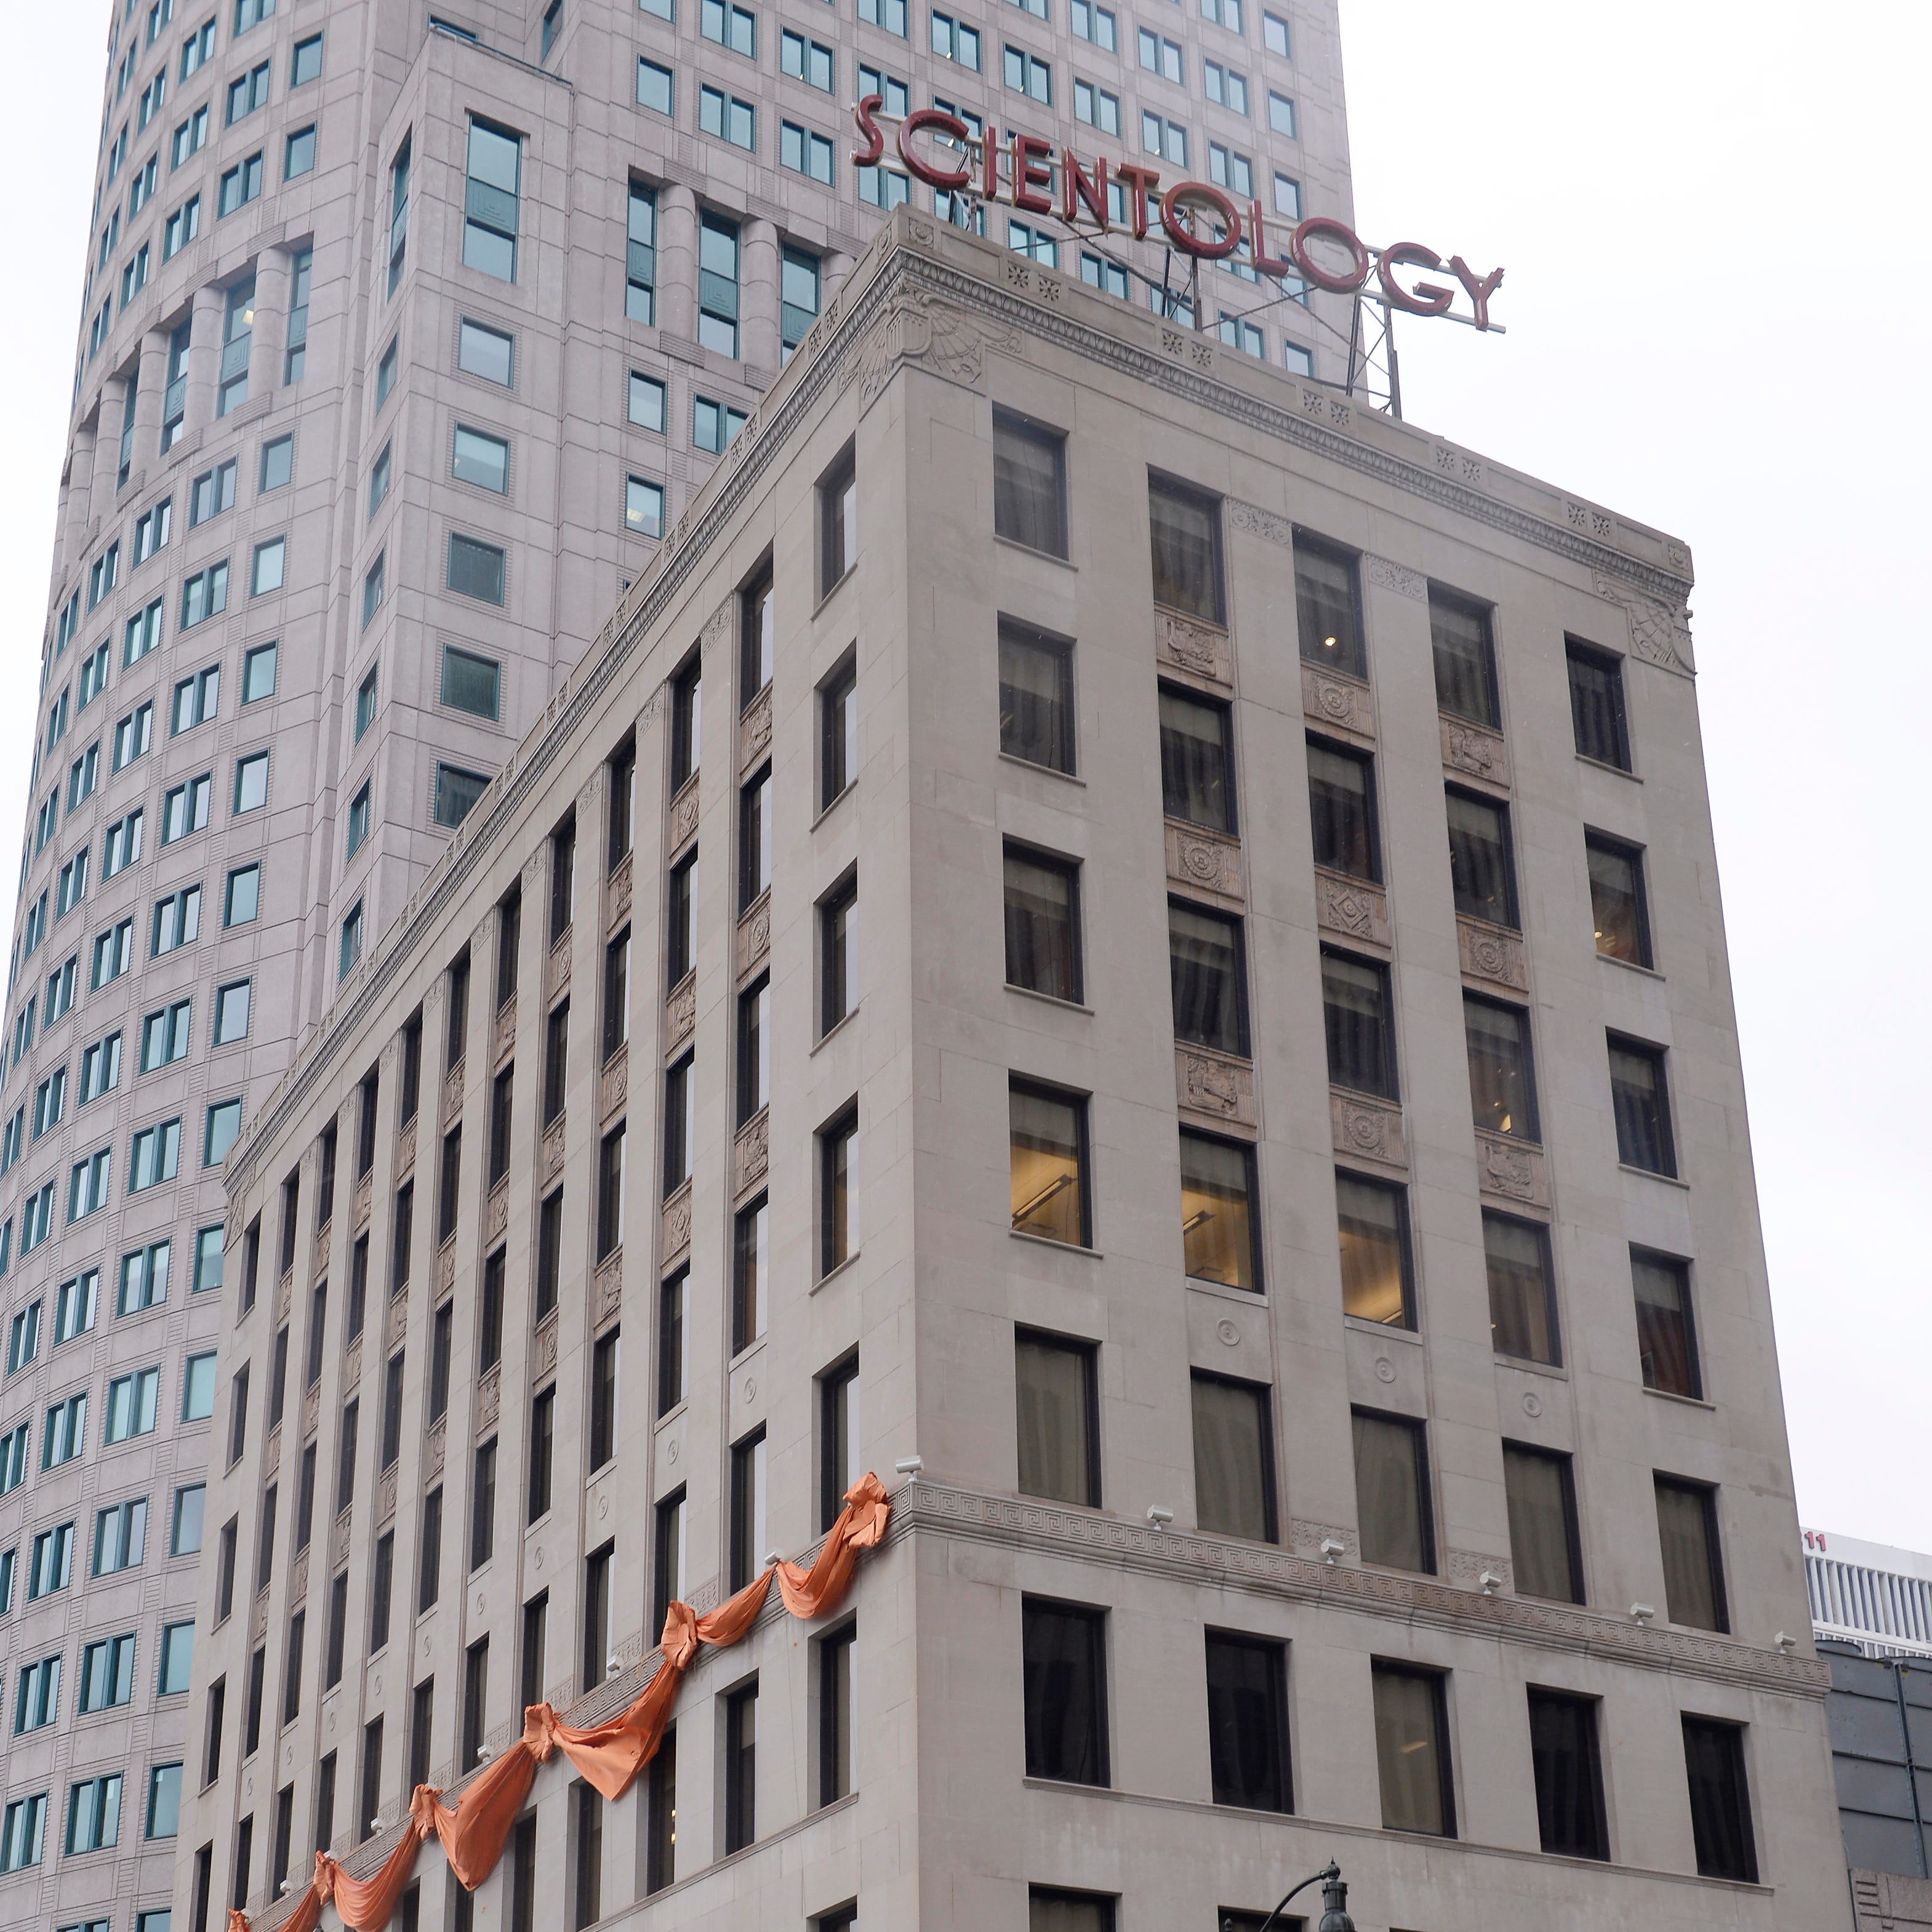 Church of Scientology opens doors of downtown Detroit center